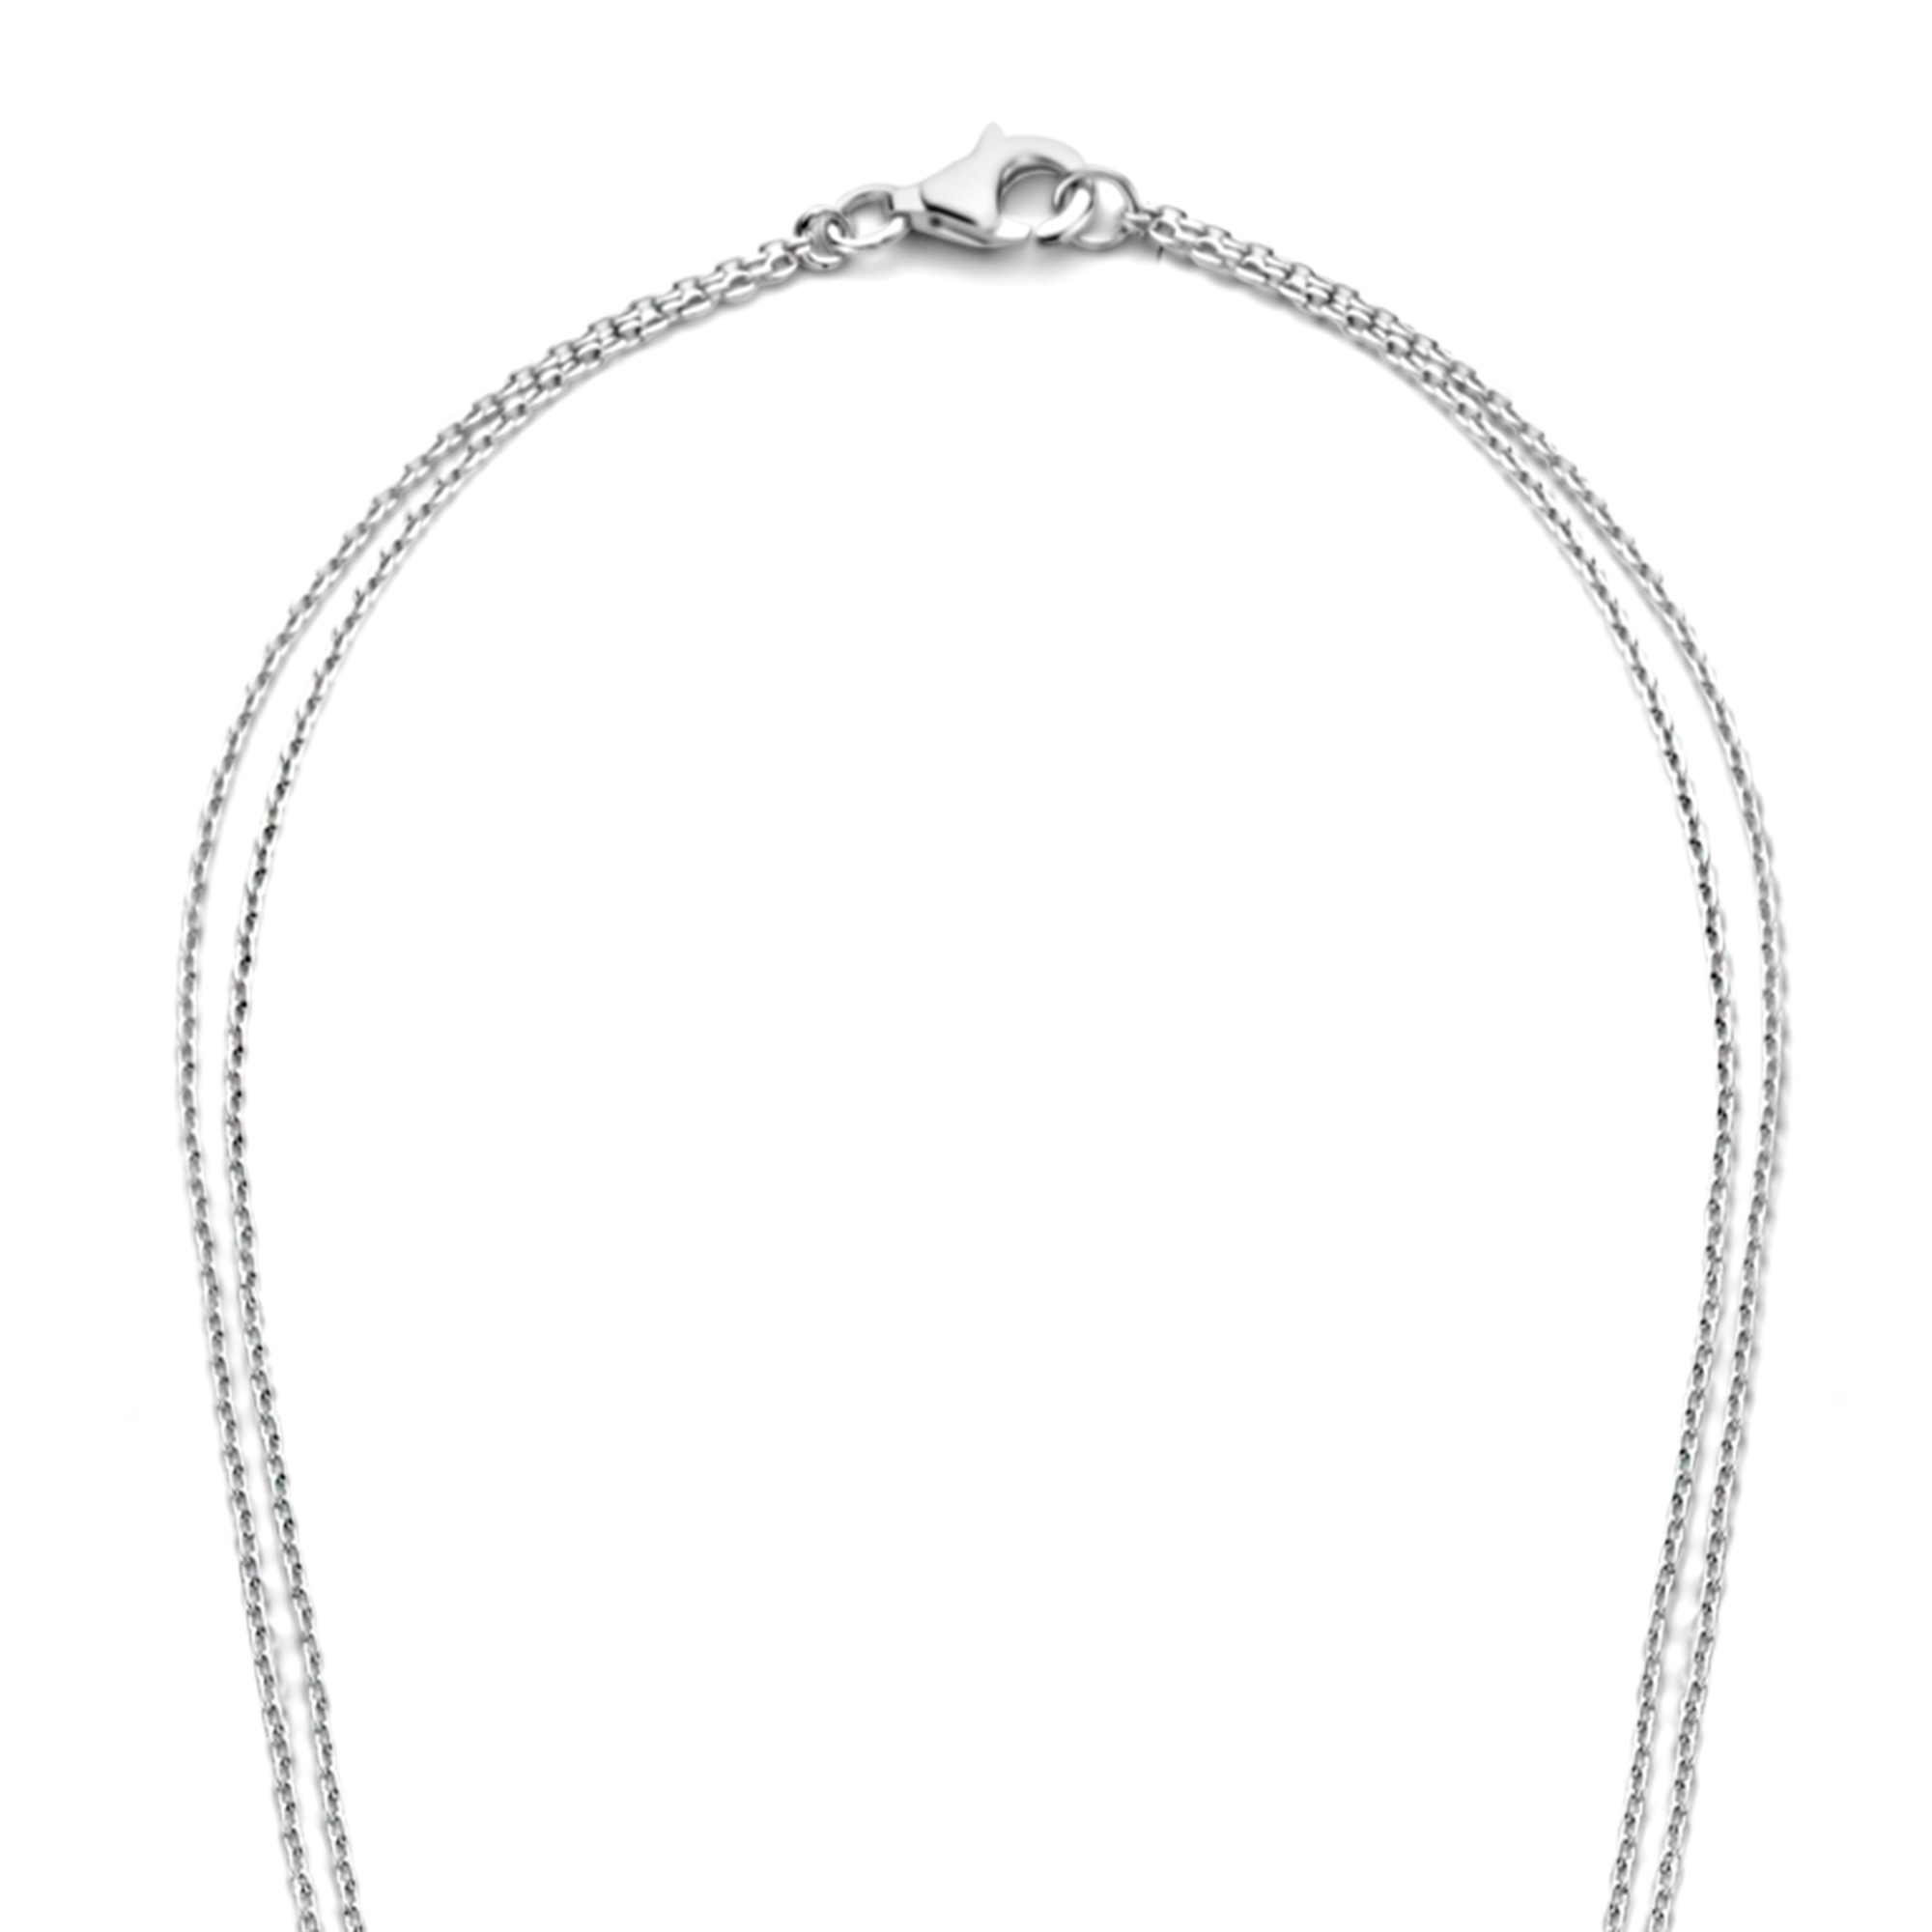 Selected Jewels Mila Elodie 925 sterling silver double necklace with zirconia